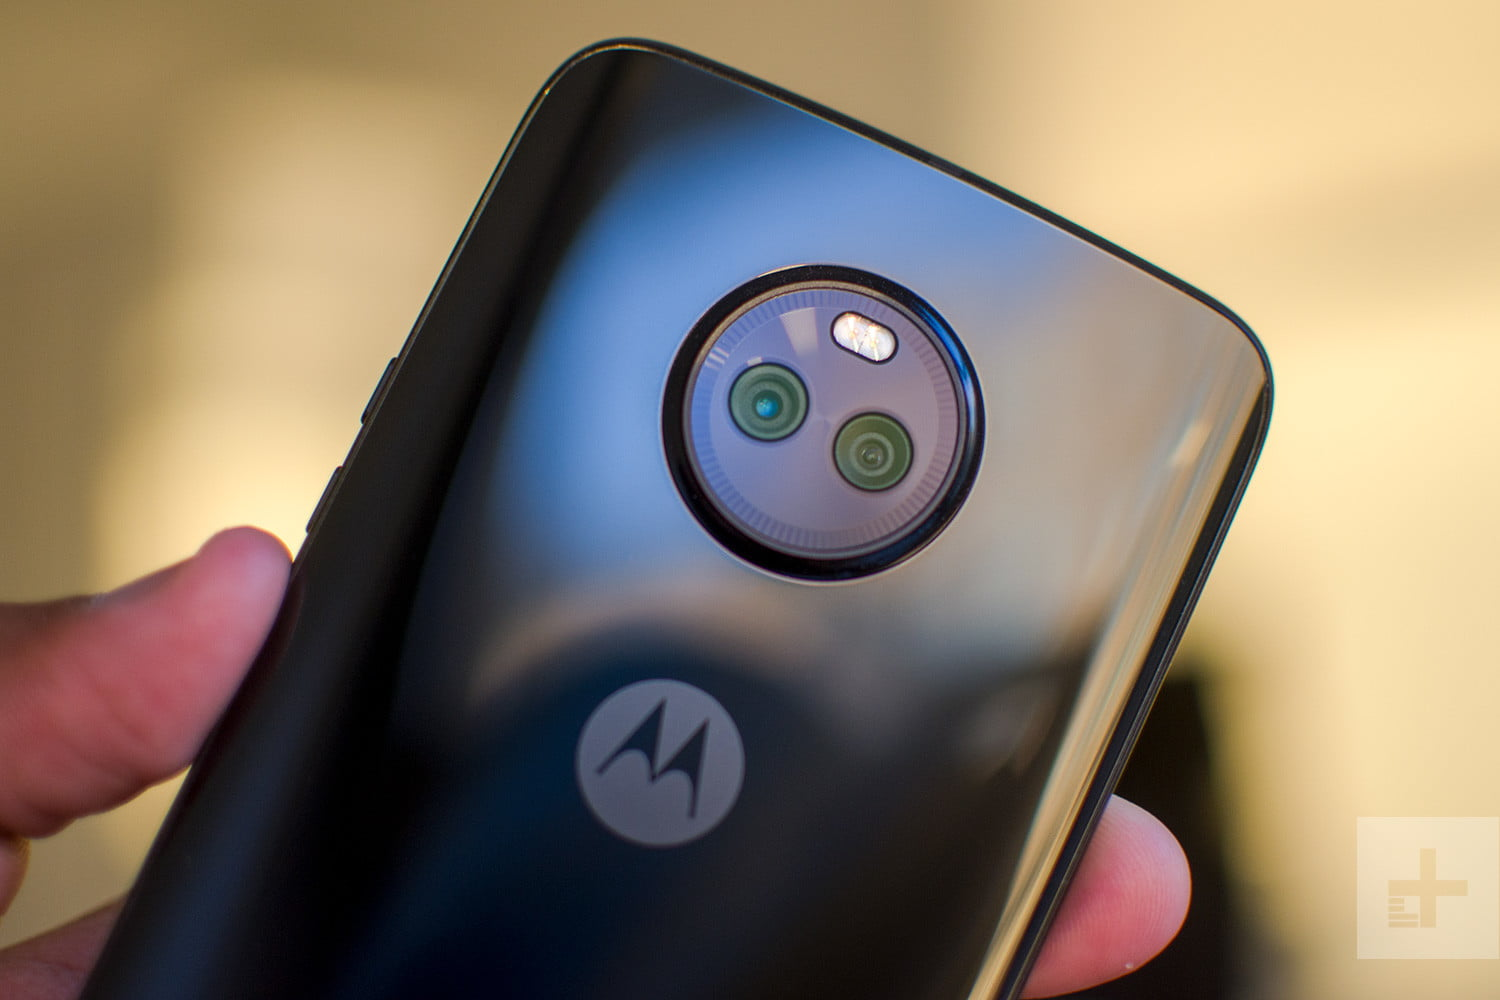 10 Handy Moto X4 Tips and Tricks Worth Knowing About | Digital Trends